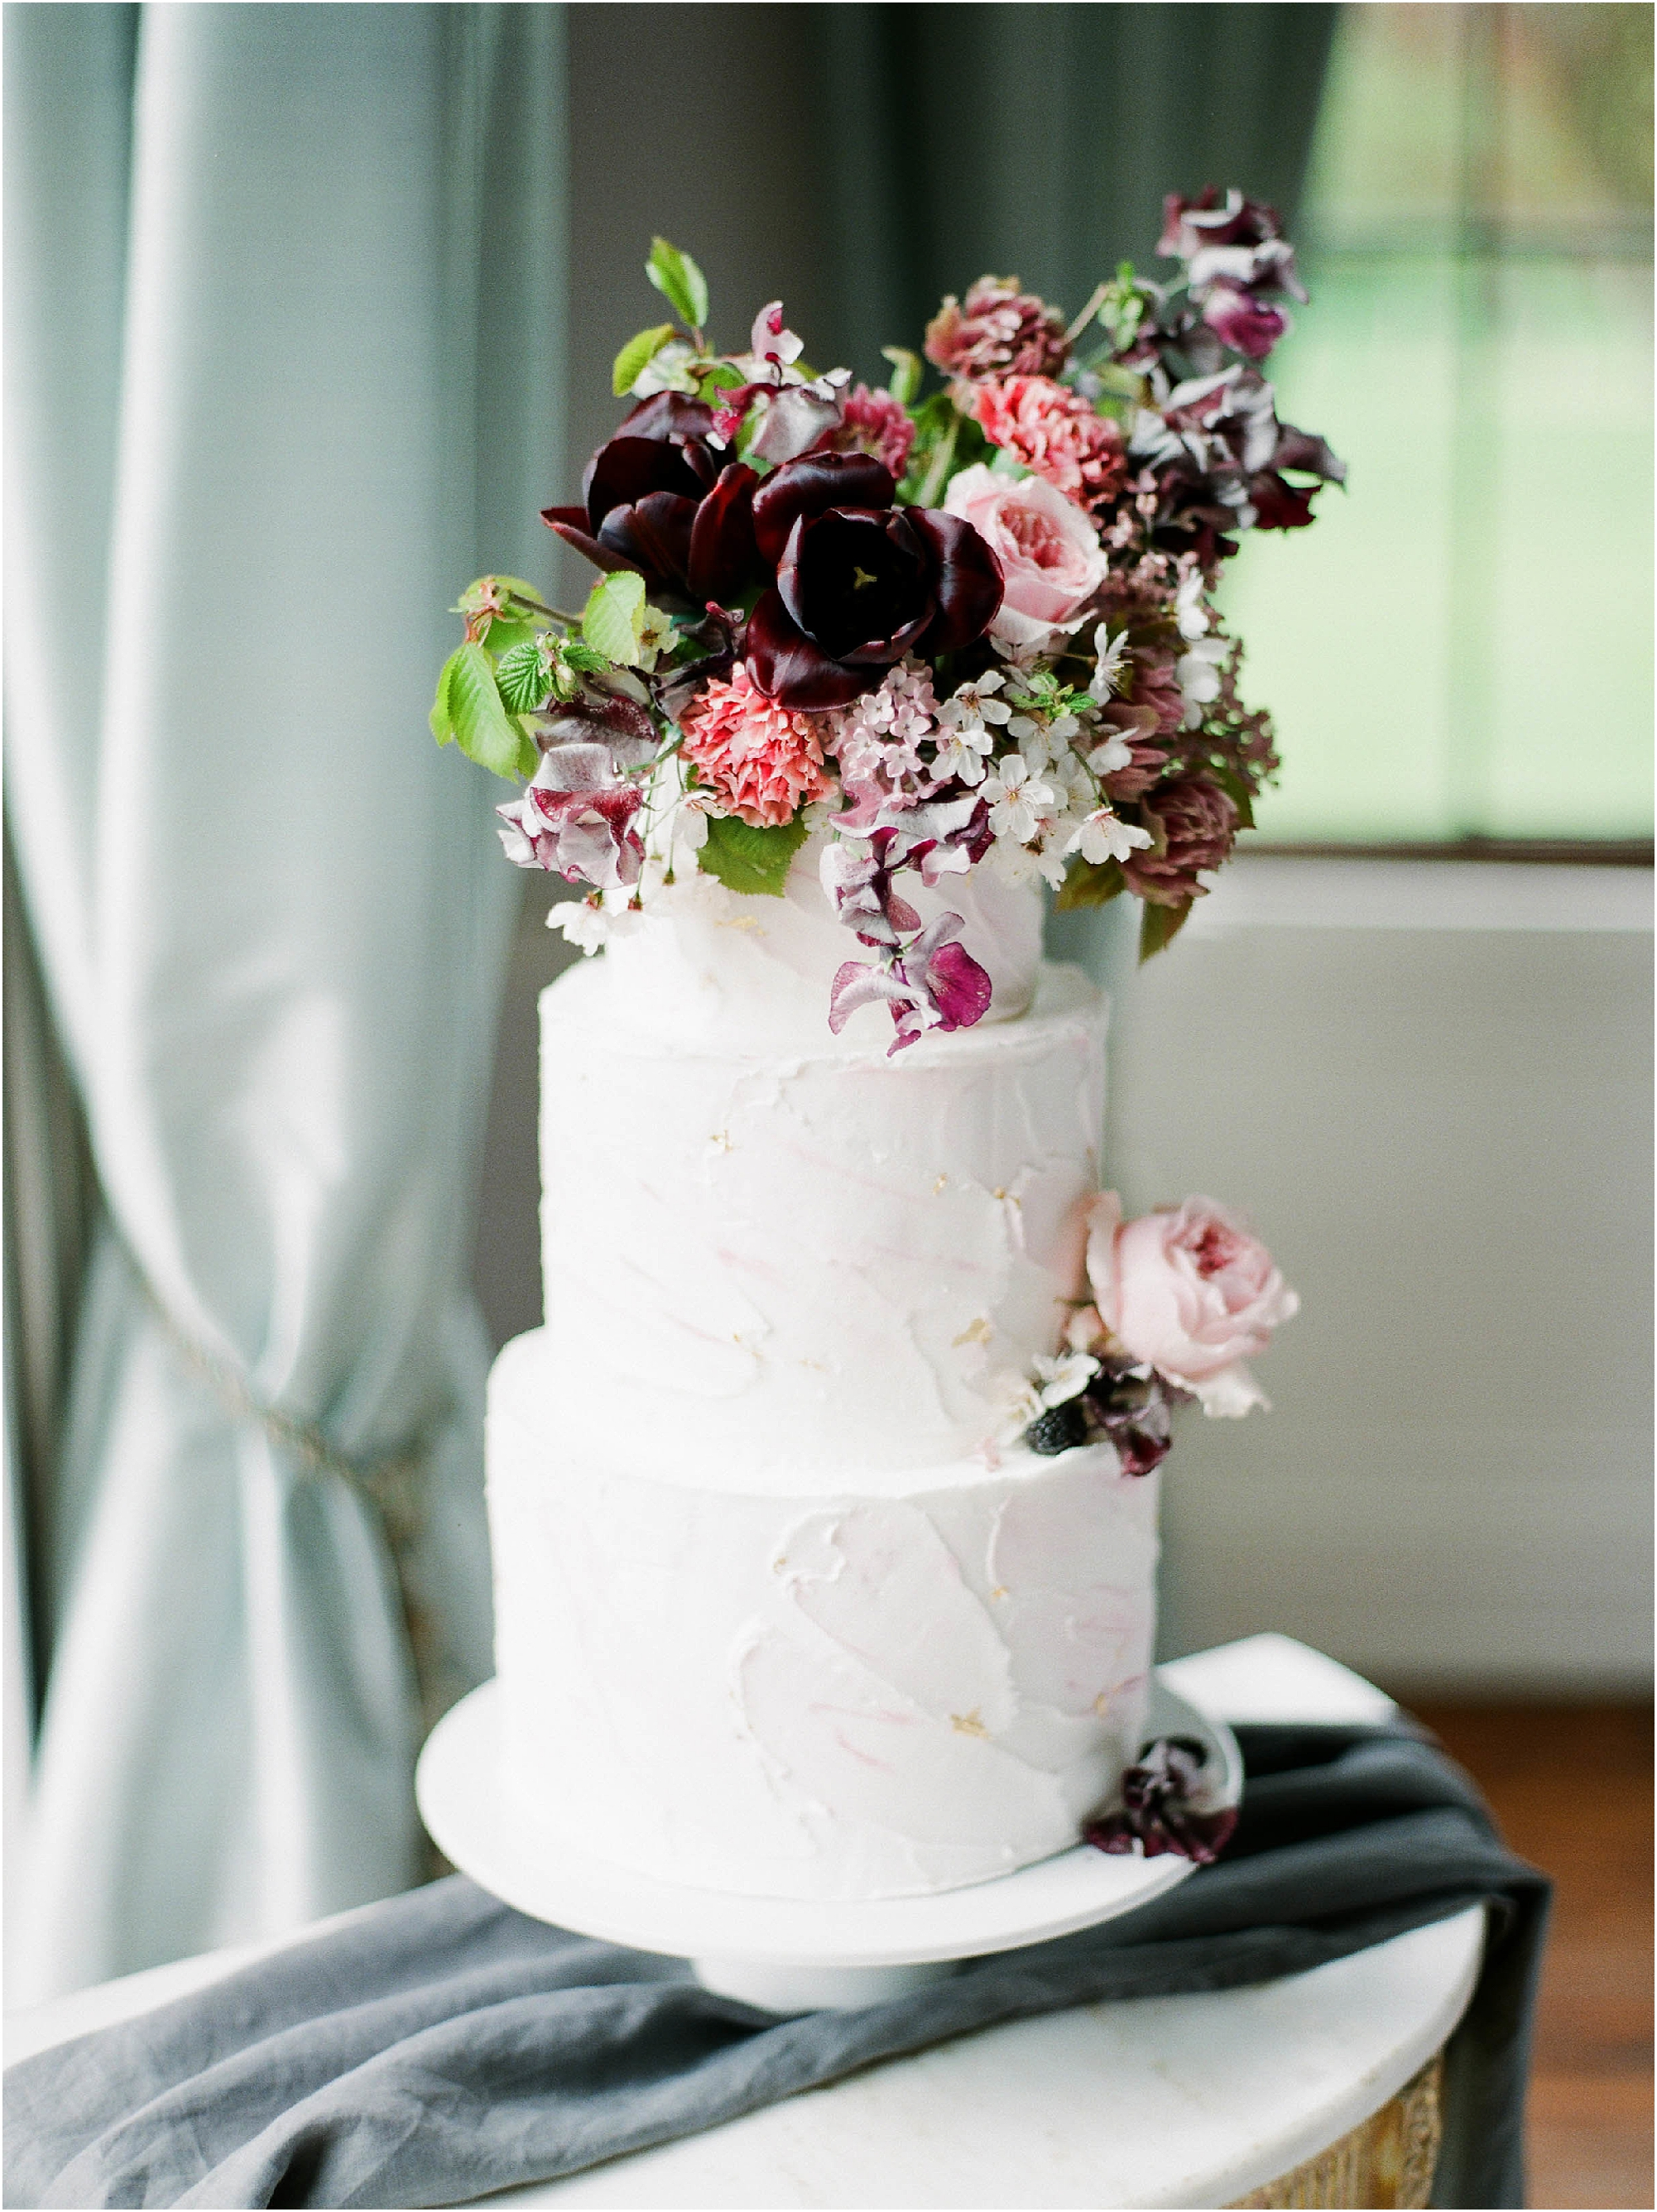 Three tier wedding cake with maroon and pink flowers on it and gold leaf